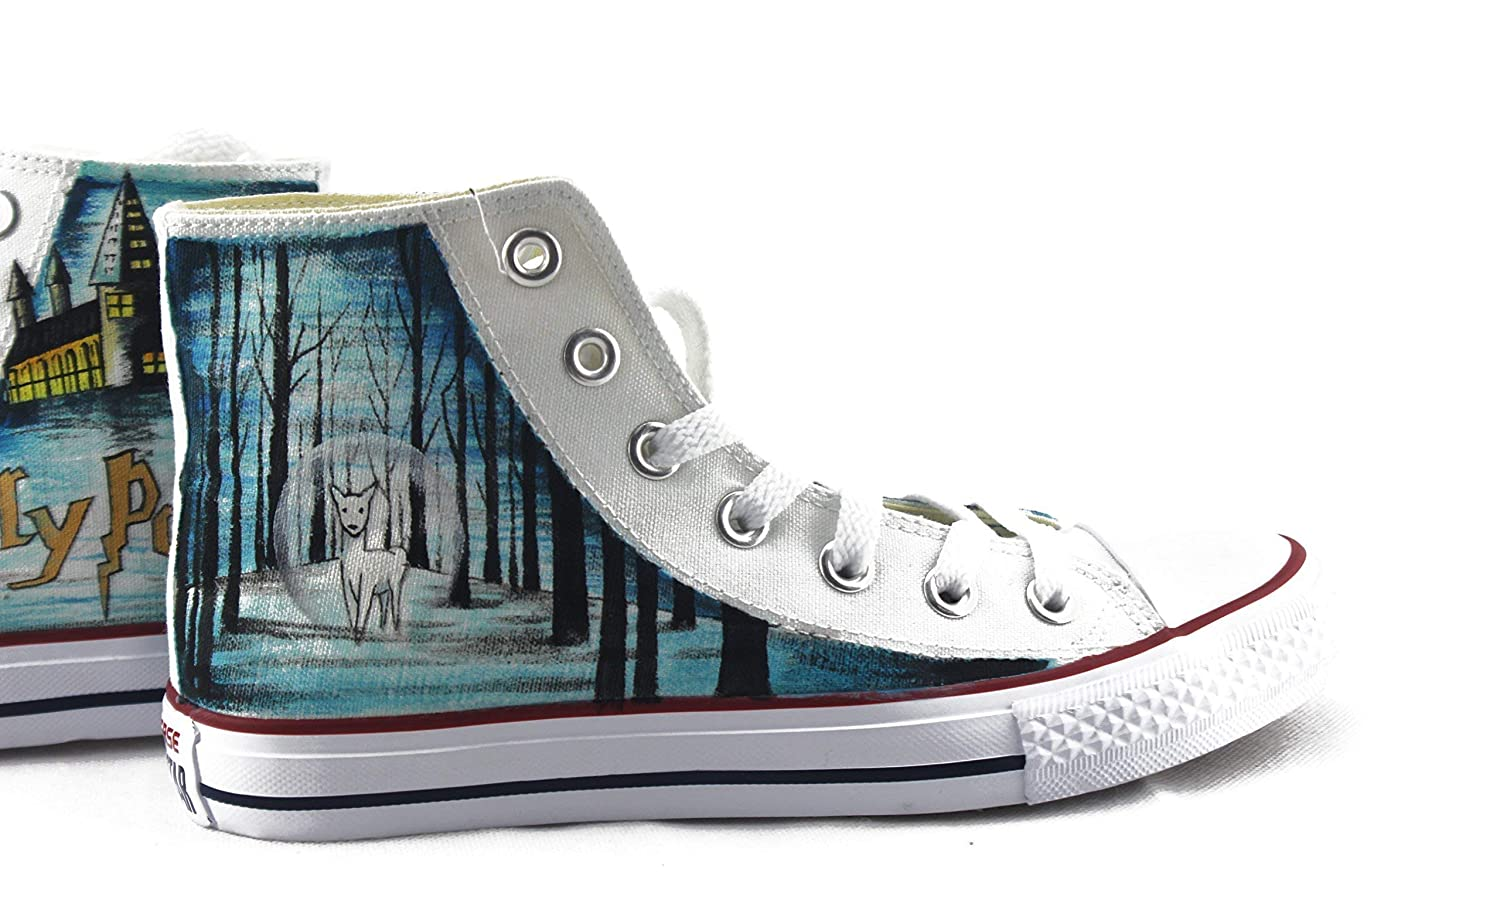 16c1be5ed53f Harry potter sneakers hand painted shoes custom men jpg 1500x910 Converse  chuck harry potter related